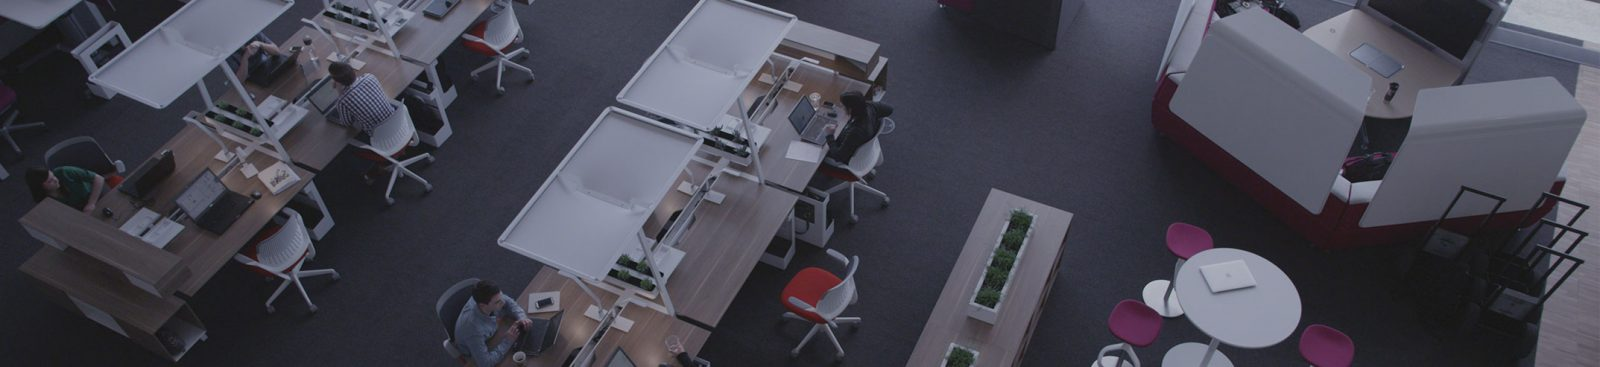 What is open office design? image